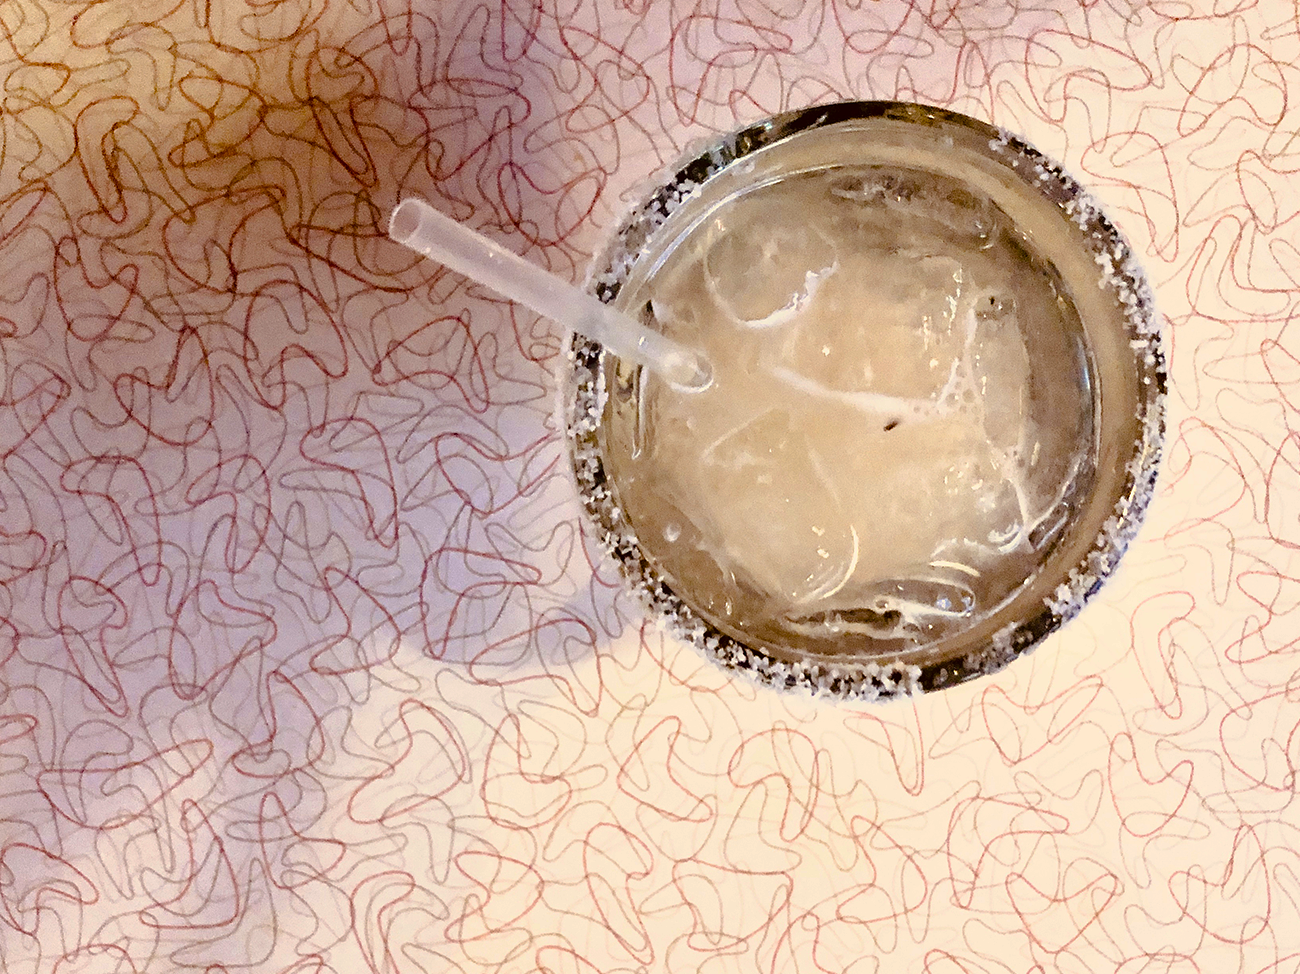 Chuy's Famous Rita with Top shelf tequila on the Rocks